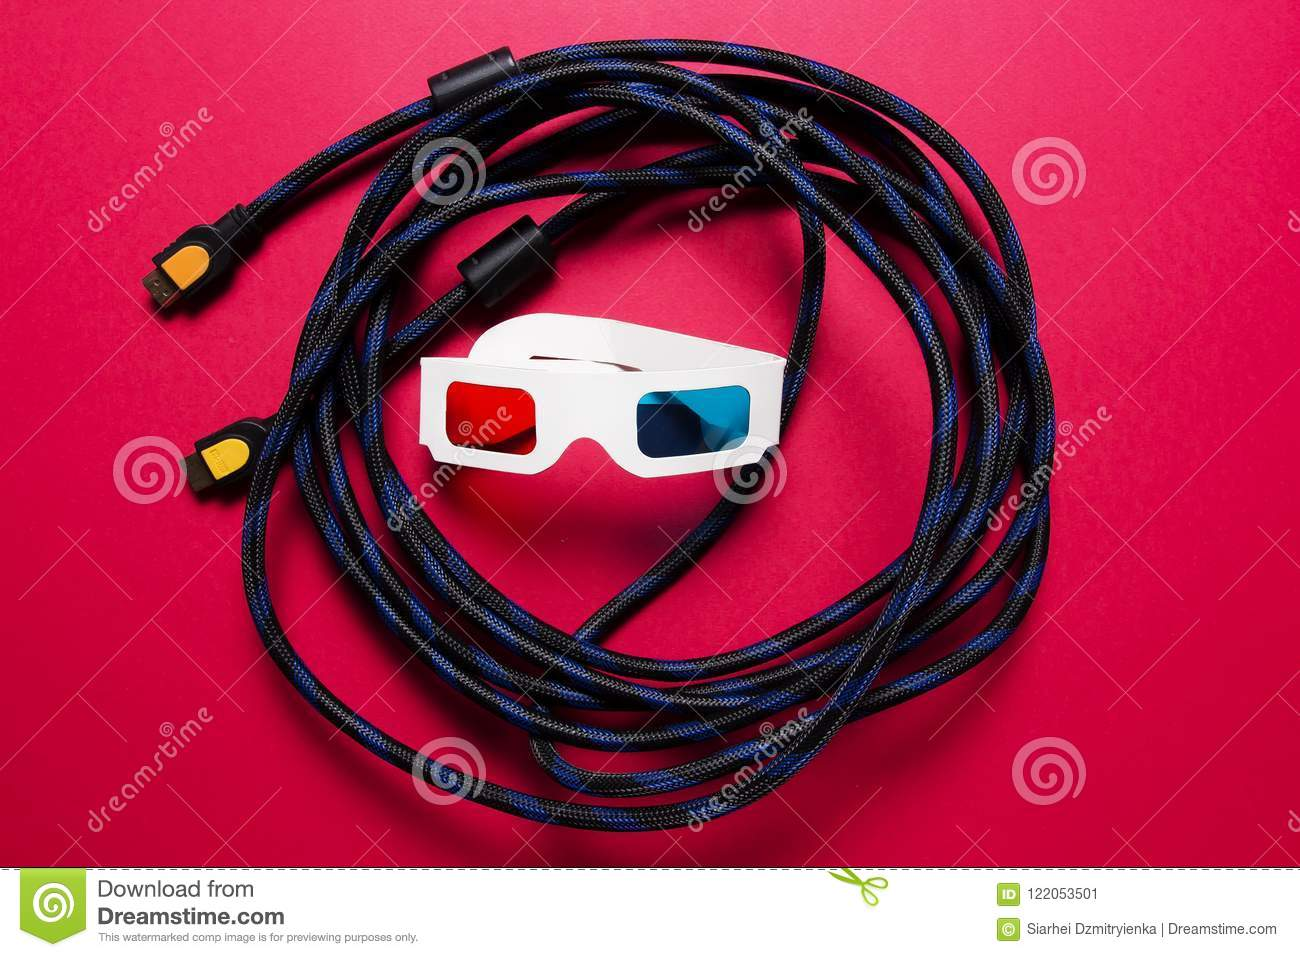 hdmi cable and paper 3d glasses  watch the movie in the 3d house